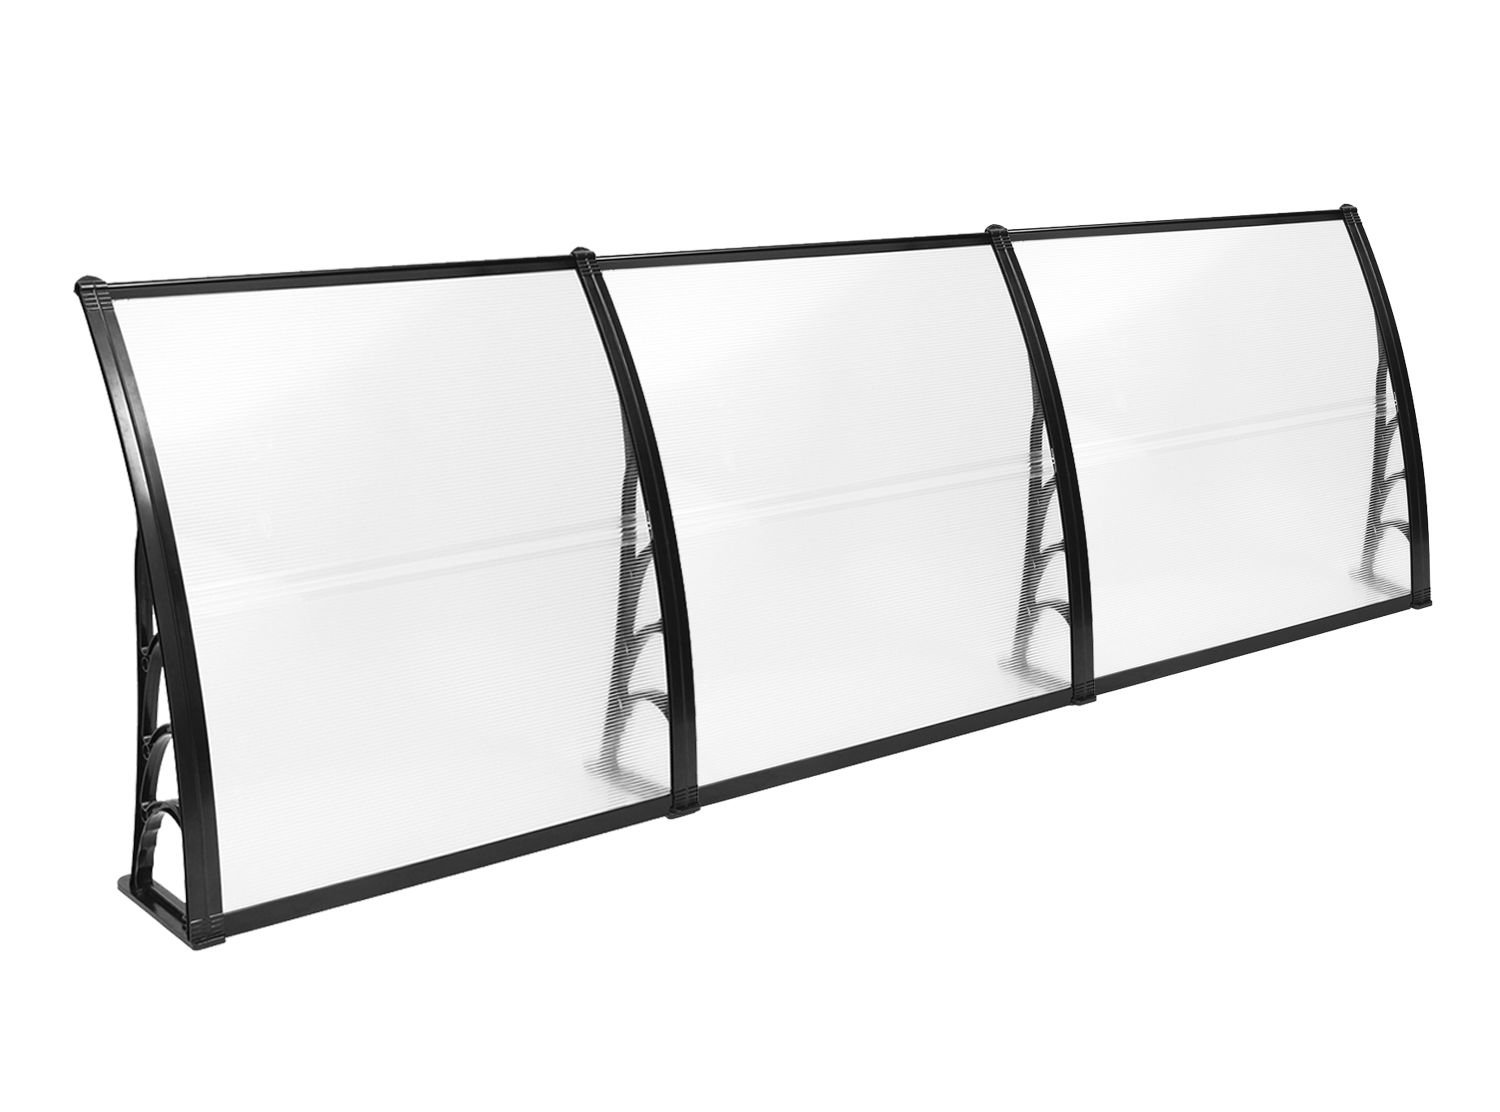 MCombo Window Awning 38''×116'' Overhead Awning Outdoor Polycarbonate Front Door Patio Cover Garden Canopy PC Transparent Sun Board, 6055-4012BK